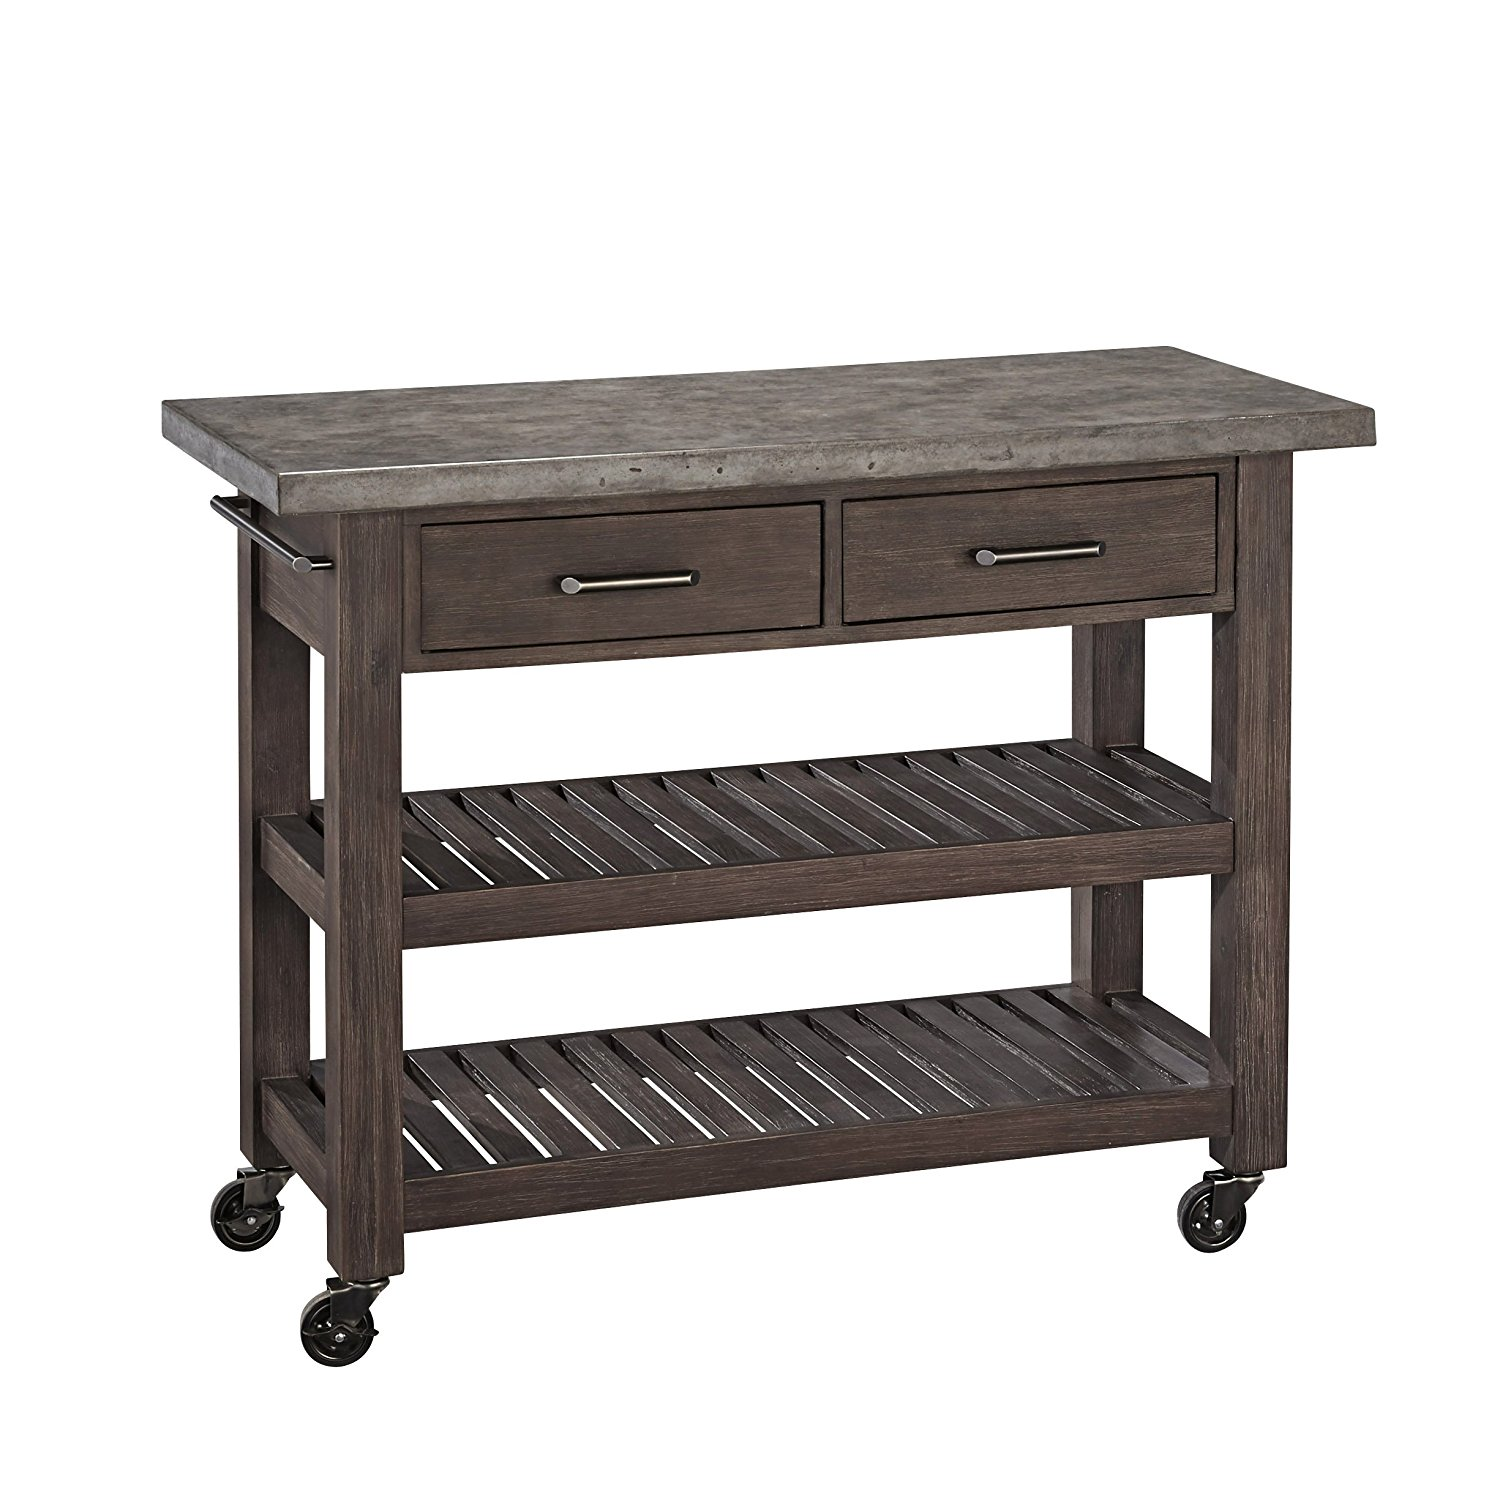 amazon.com - home styles concrete chic kitchen cart - kitchen islands u0026 UKCDHKR